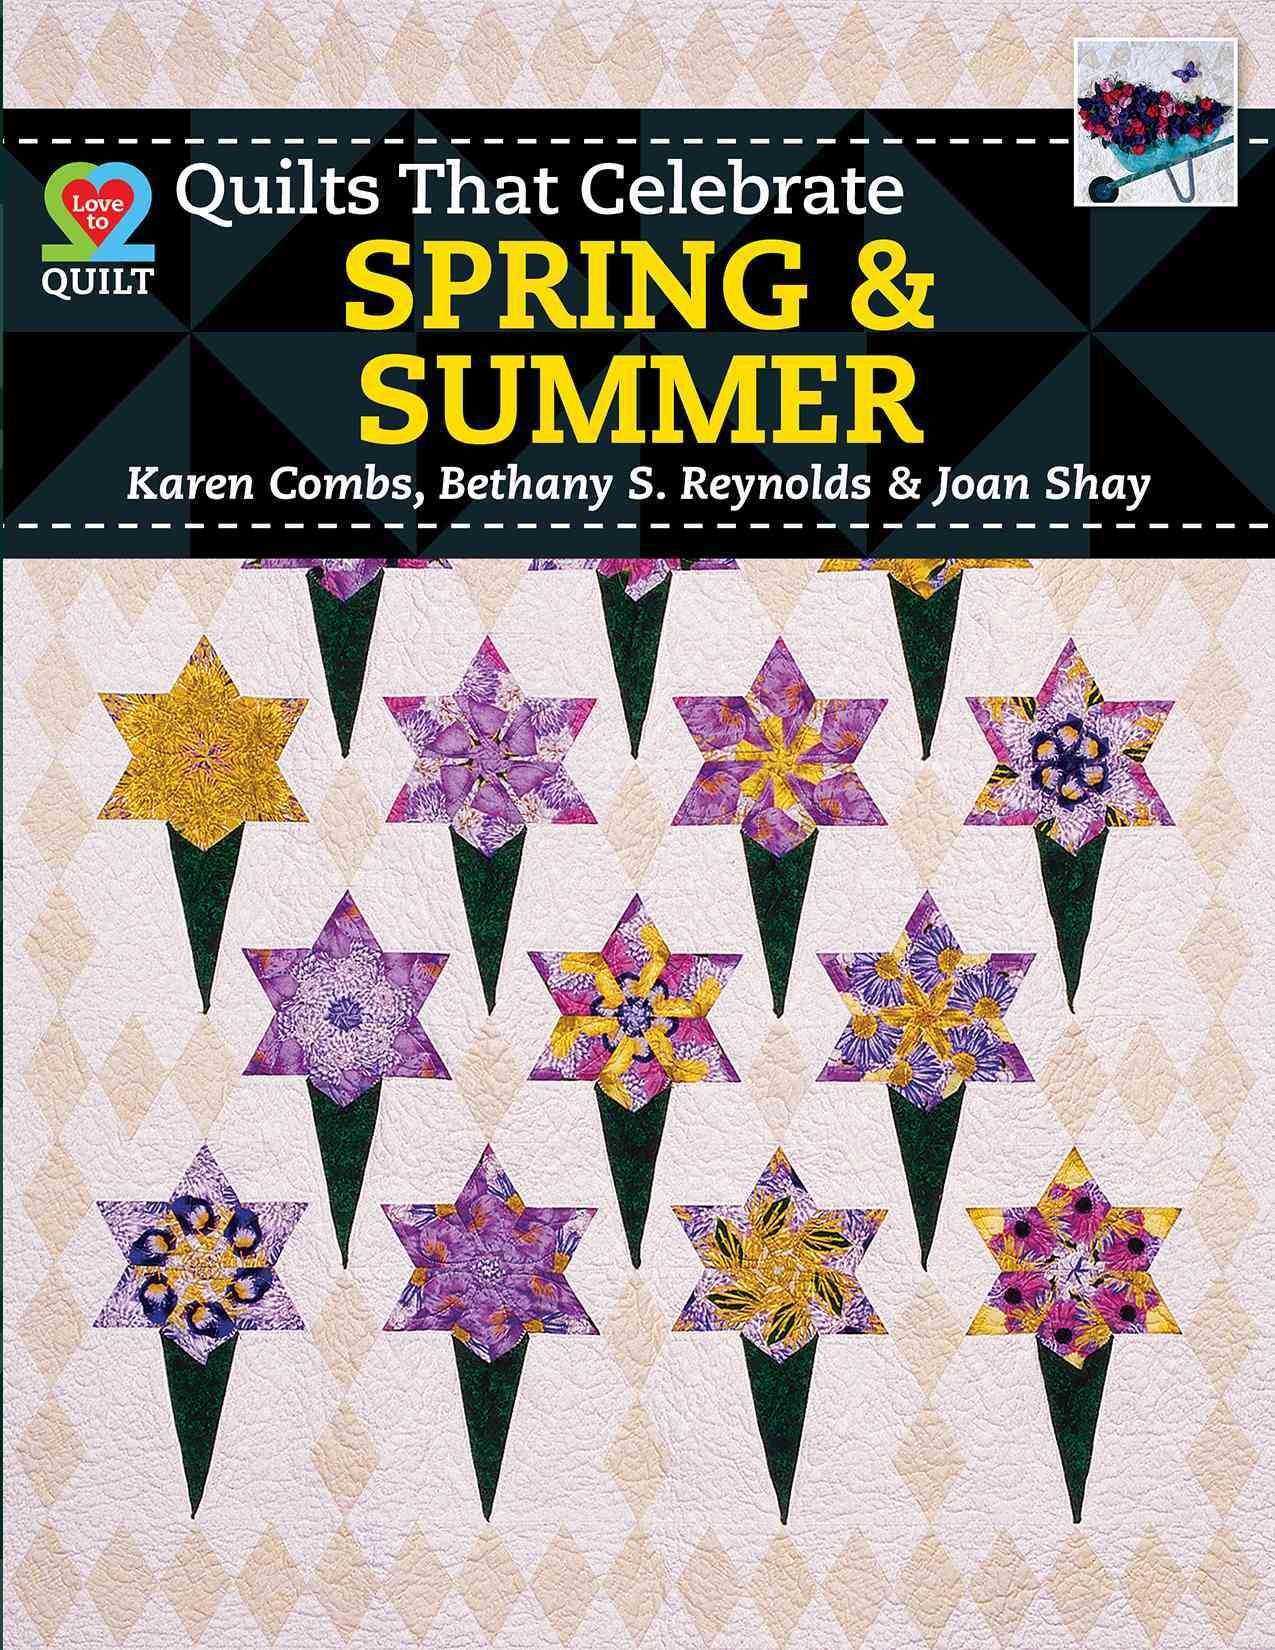 Quilts That Celebrate Spring & Summer